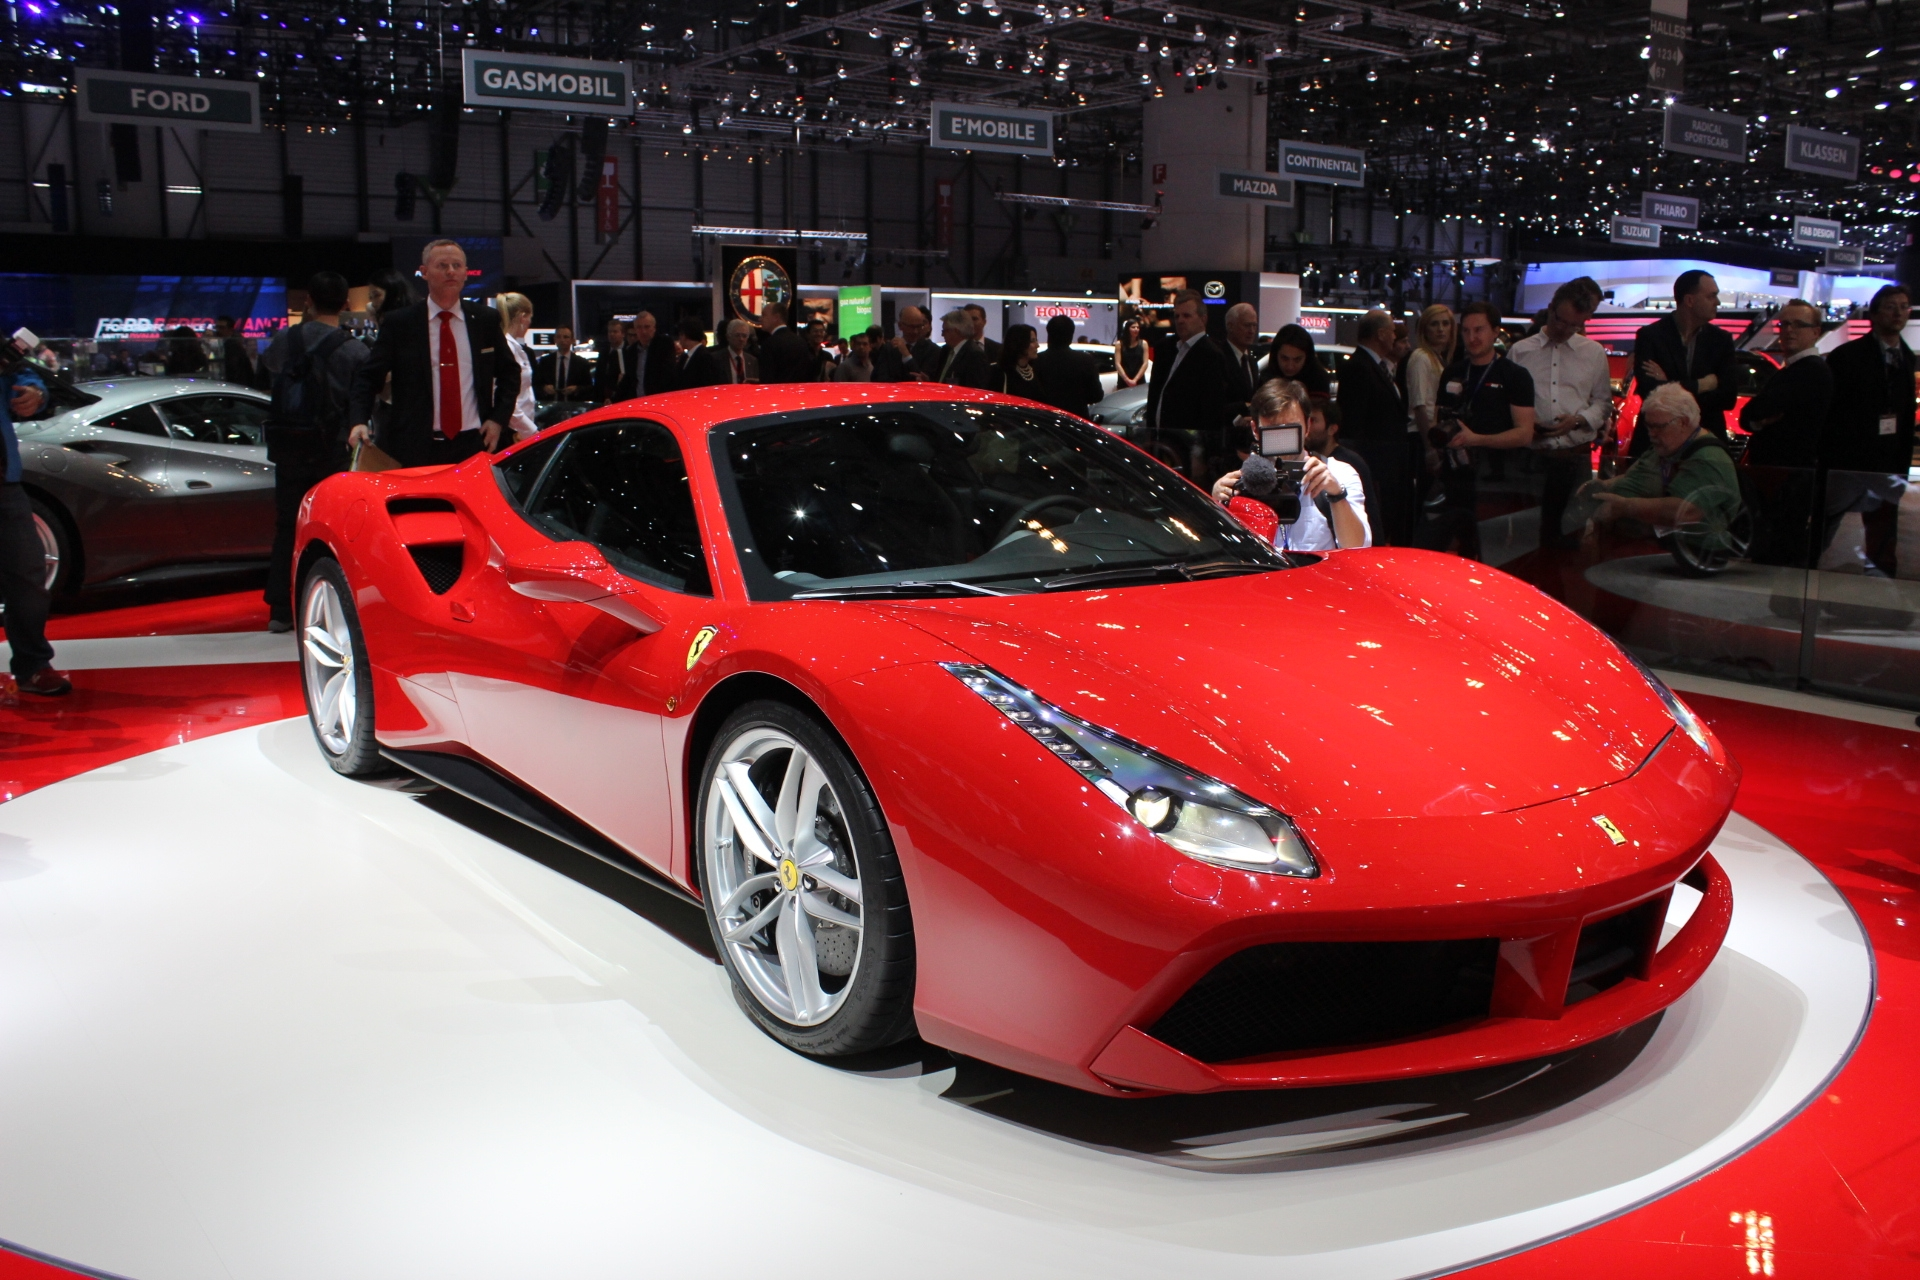 Ferrari 488 gtb les bienfaits du turbo vid o en direct du salon de gen ve 2015 - Salon de geneve 2015 nouveaute ...